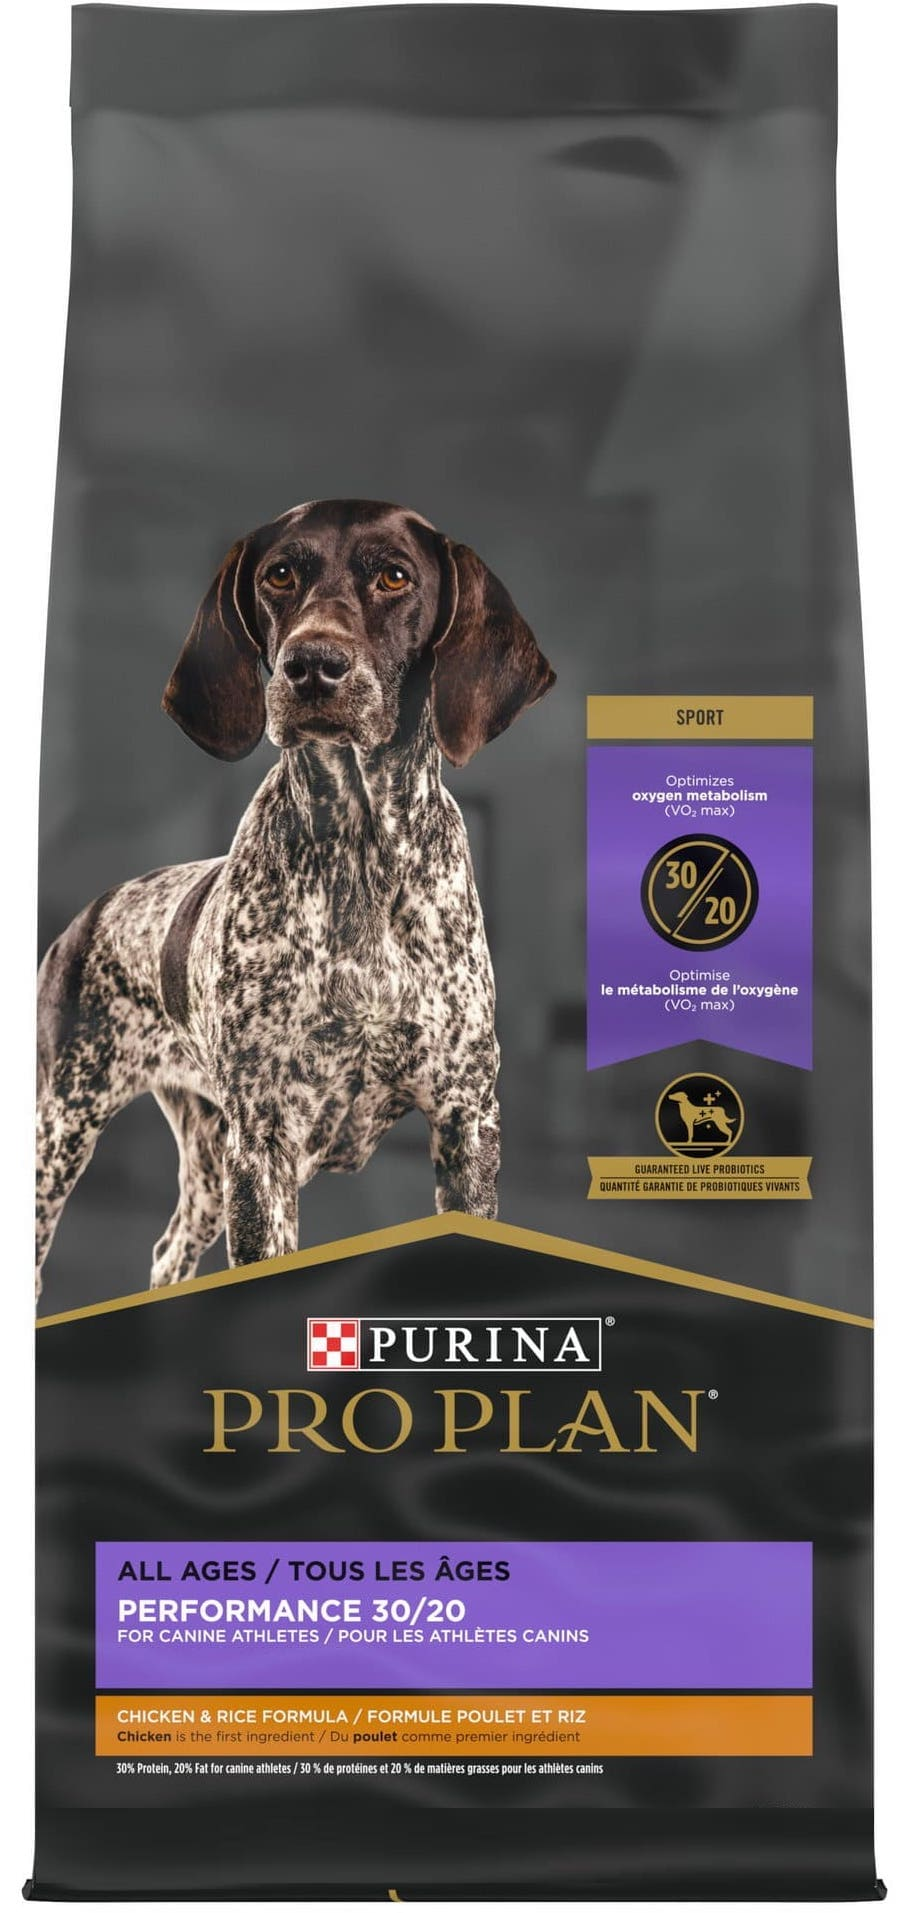 Purina Pro Plan Sport All Life Stages Performance 30/20 48 lbs Chicken & Rice 1